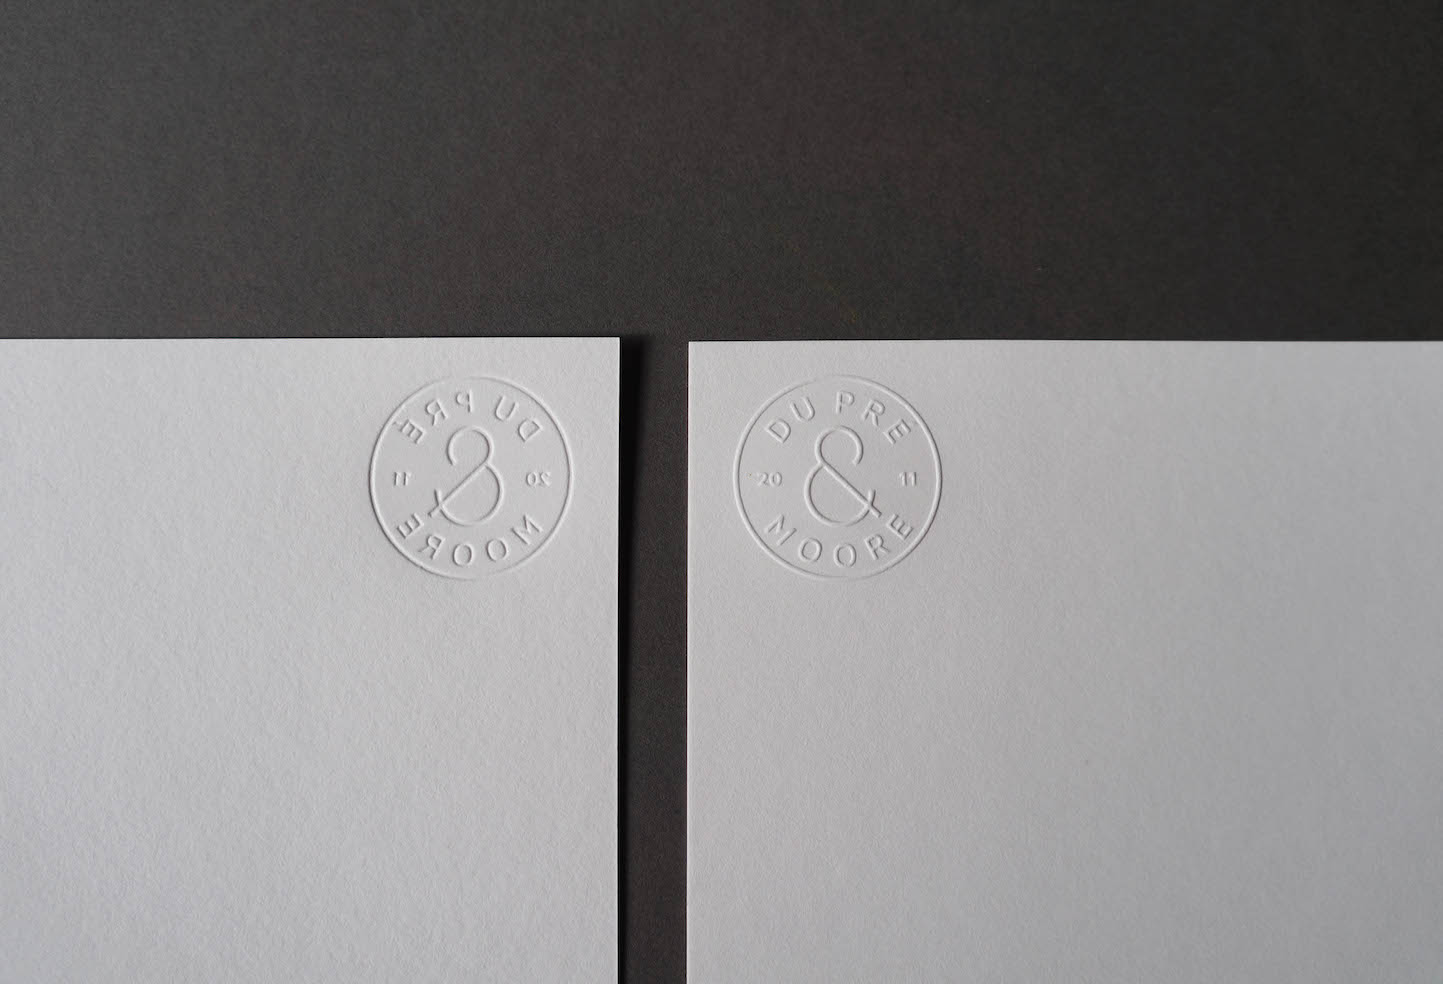 blind-emboss-logo-letterpress-dupremoore-with-comps